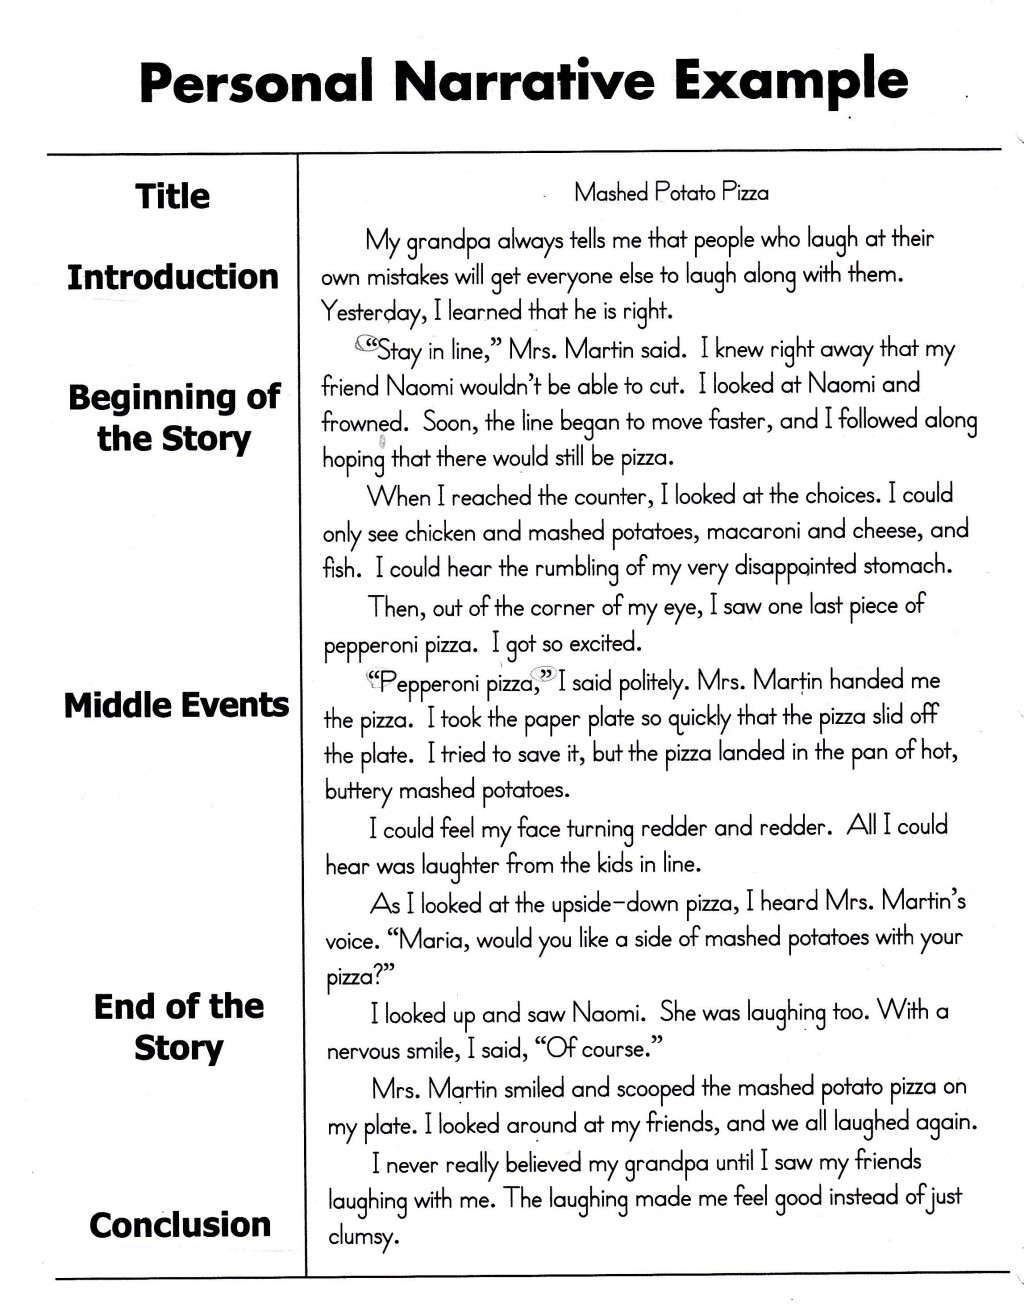 007 How To Write Personal Narrative Essay For College Fascinating A Large